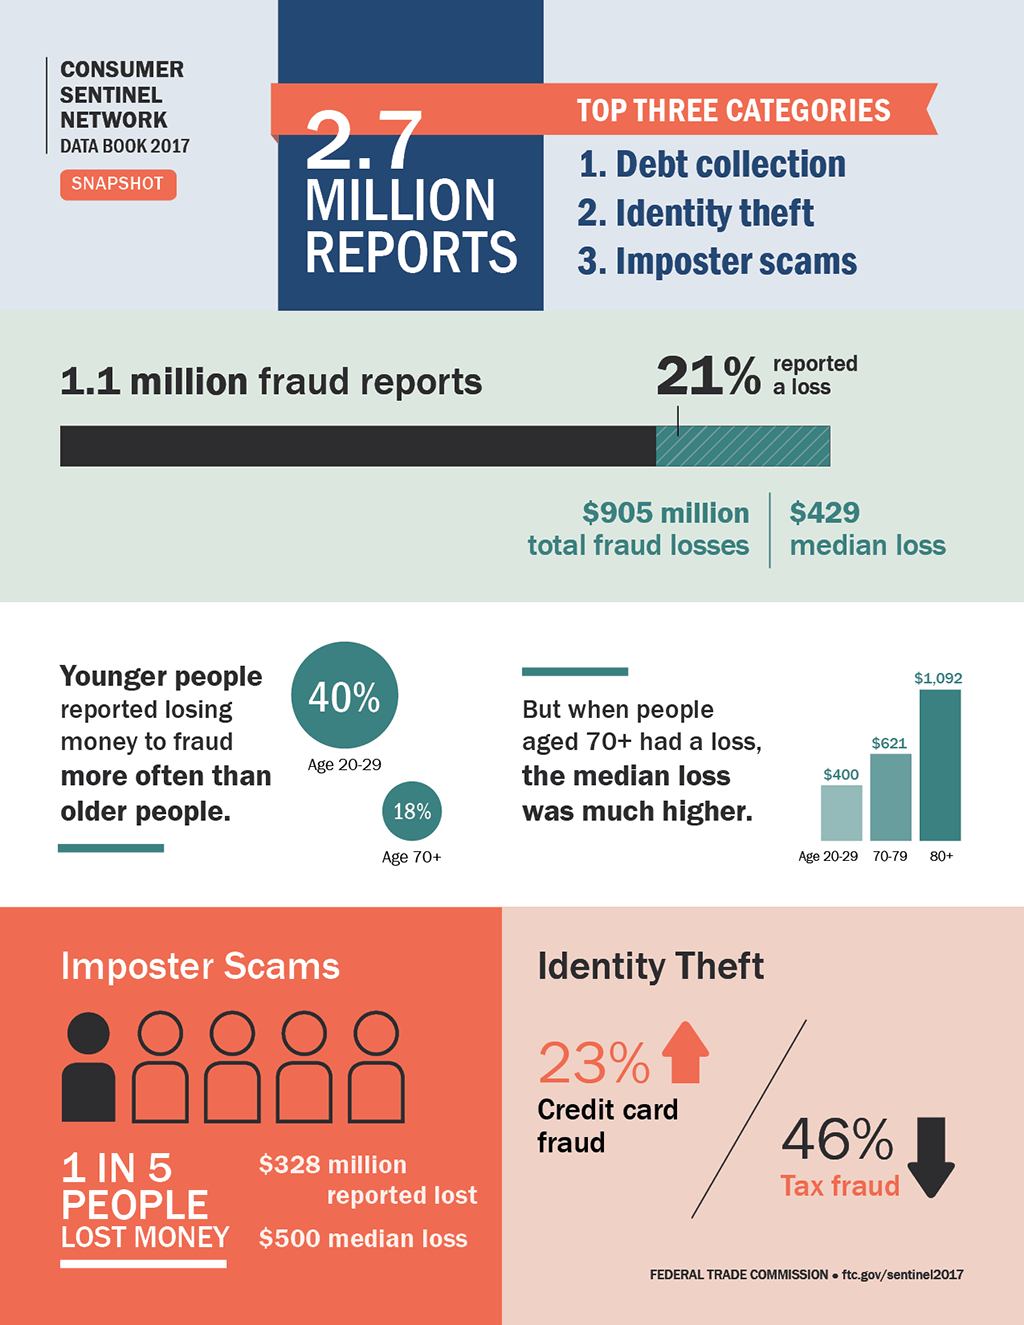 Consumer Sentinel Network Data Book 2017 Snapshot. 2.7 million reports. Top three categories: 1. Debt collection 2. Identity theft 3. Imposter scams Of 1.1 million fraud reports, 21% reported a loss. $905 million total fraud losses; $429 median loss. Younger people reported losing money to fraud more often than older people. 40% of reports from people age 20-29 reported a loss; 18% of reports from people age 70+ reported a loss. But when people aged 70+ had a loss, the median loss was much higher. Median loss $400 for age 20-29; median loss $621 for age 70-79; median loss $1,092 for age 80+. Imposter scam reports: 1 in 5 people lost money to a reported imposter scam. $328 million reported lost; $500 median loss. Identity theft reports: Credit card fraud increased 23% from 2016. Tax fraud decreased 46% from 2016. Federal Trade Commission. ftc.gov/sentinel2017